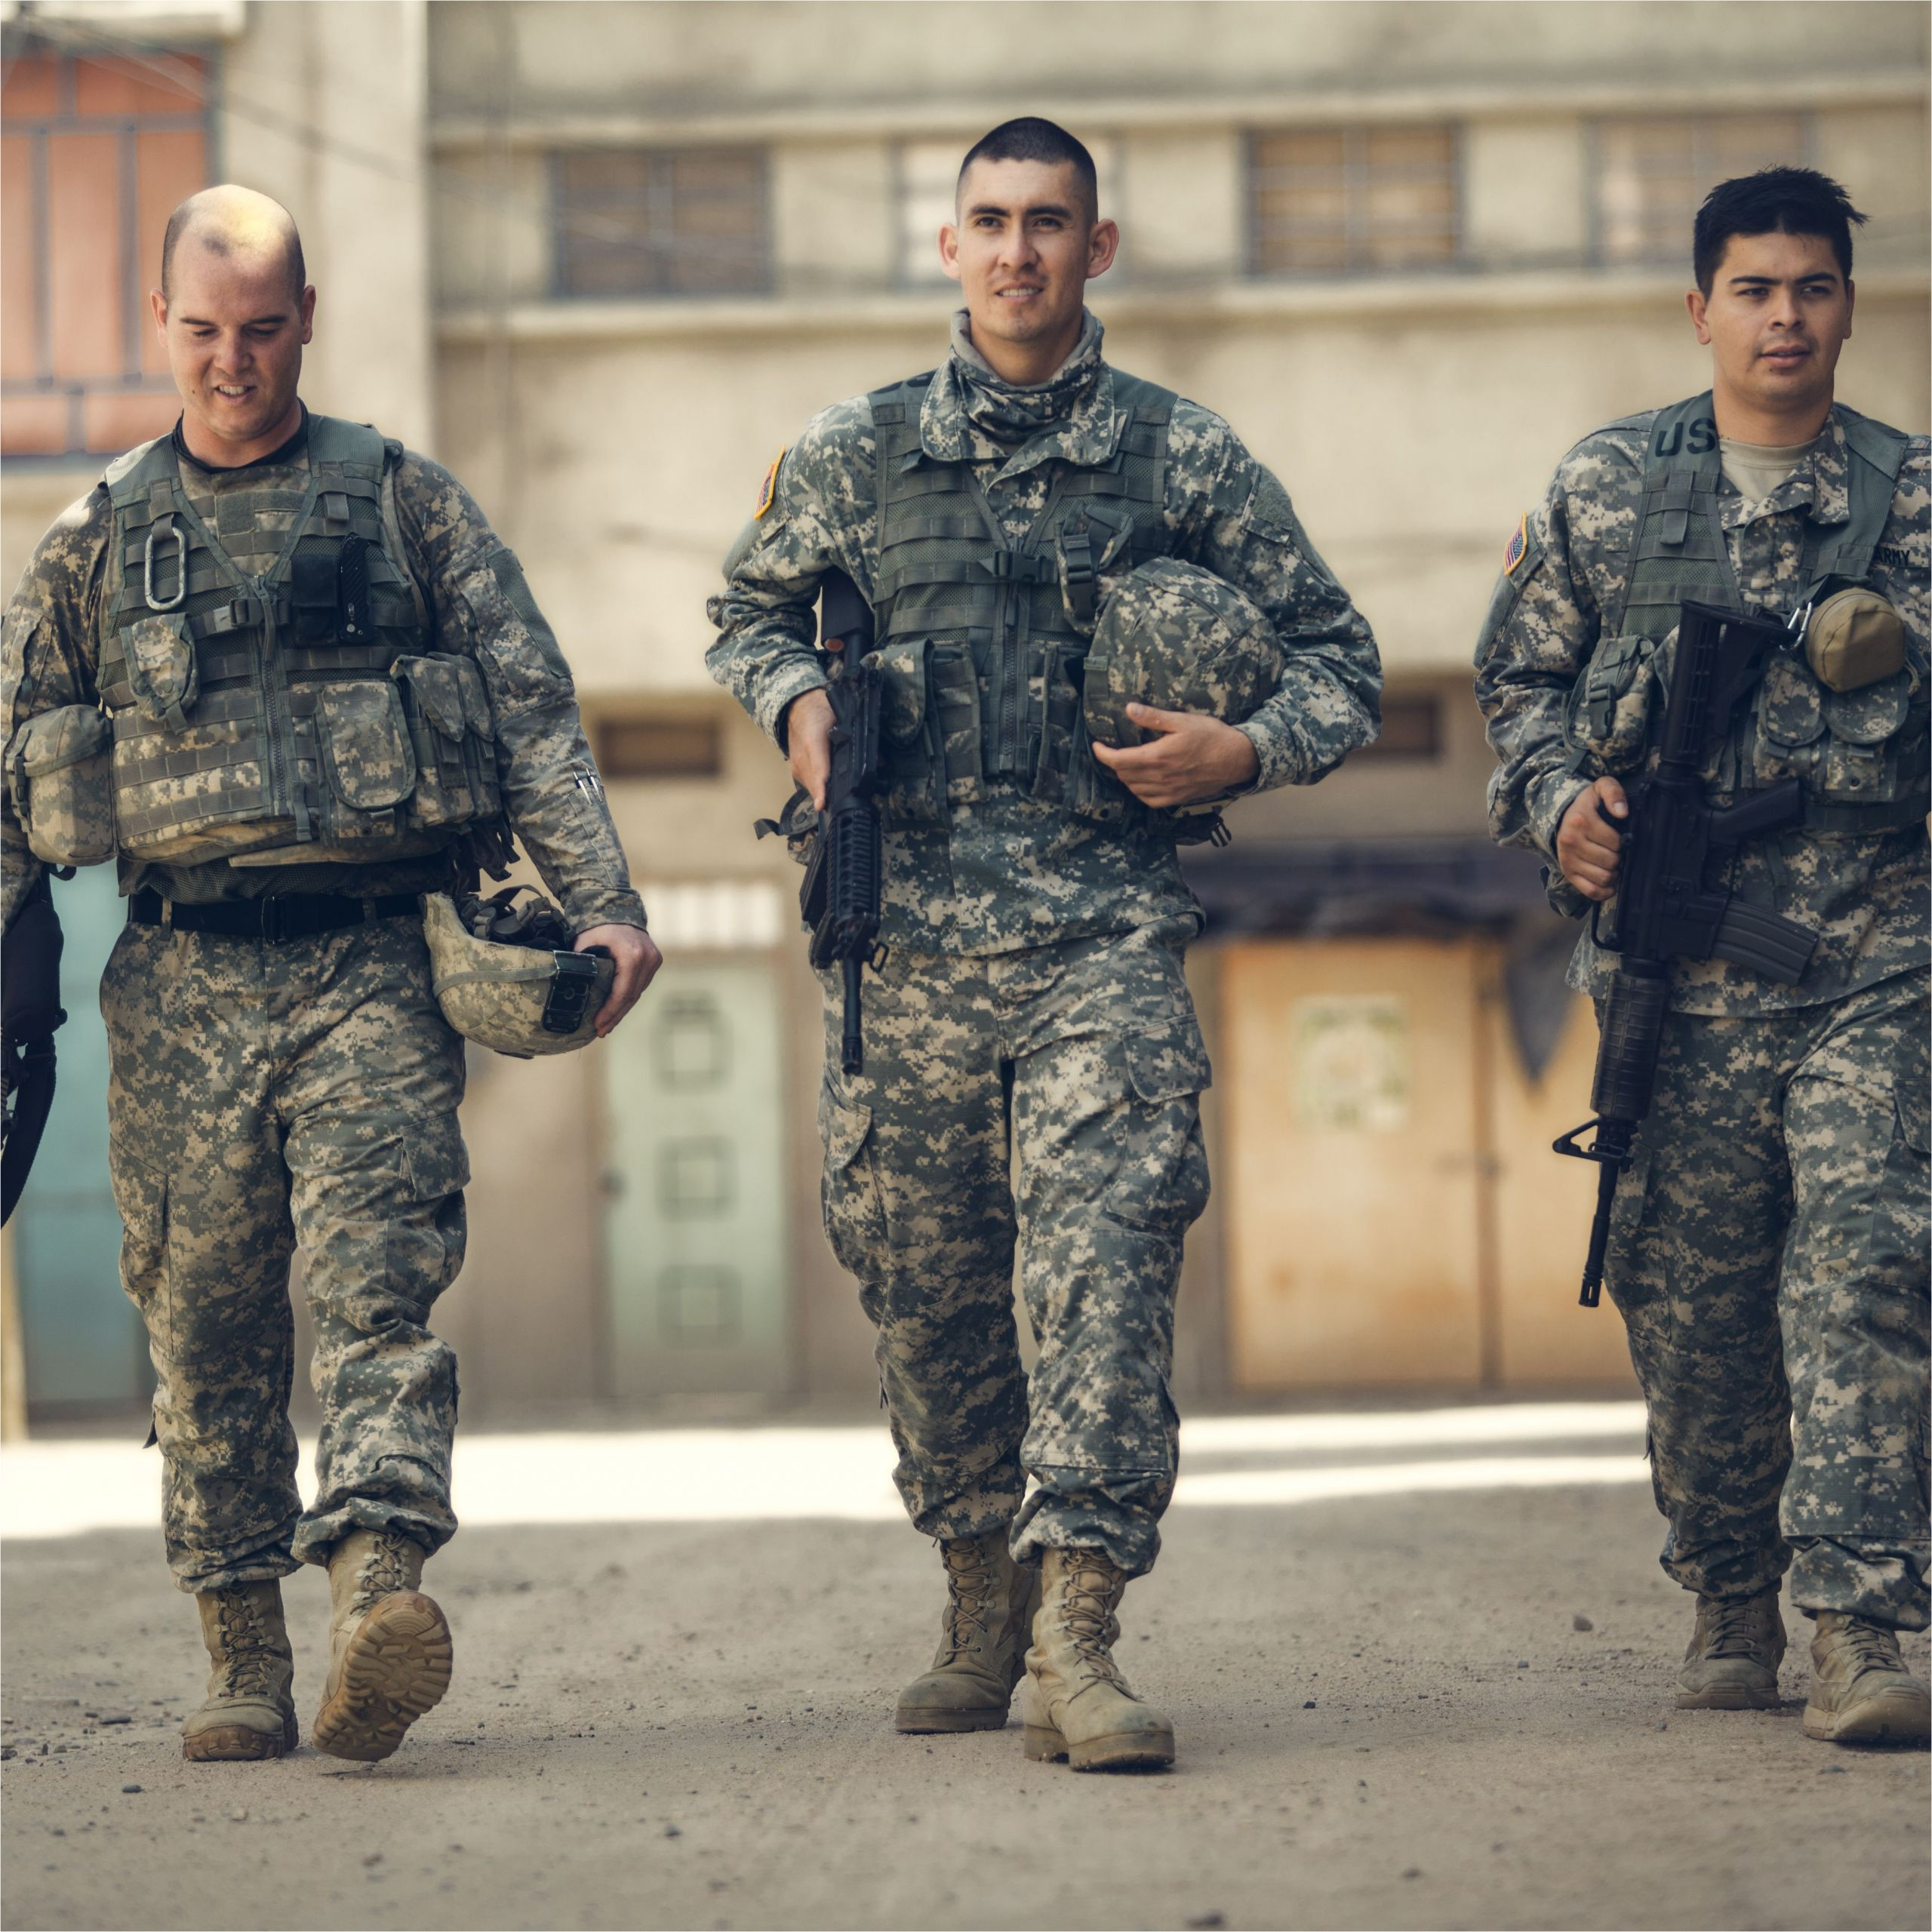 army troops walk down a street in combat 567673935 584a982b5f9b58a8cde9bd15 jpg